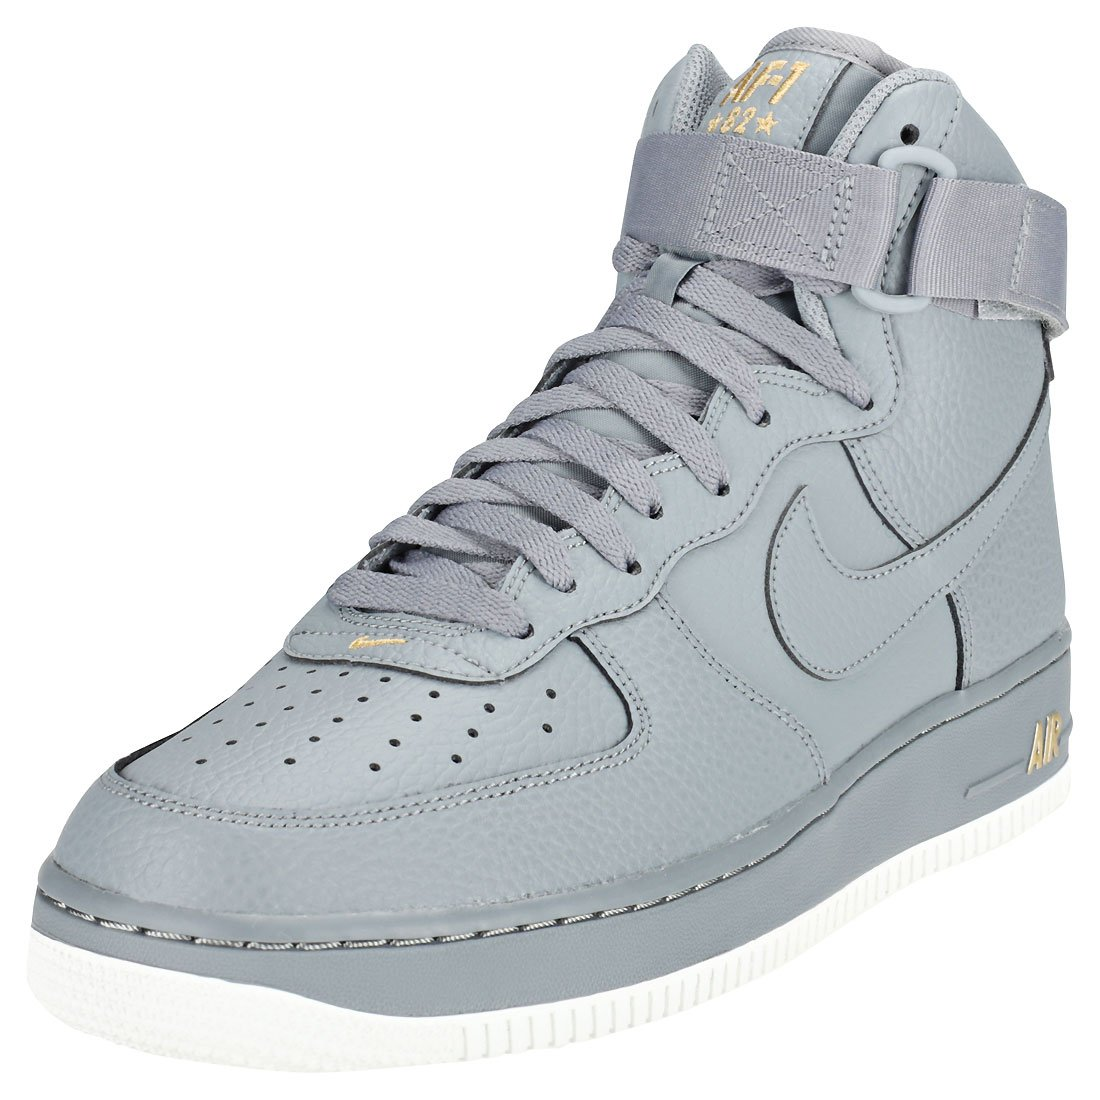 68f8c7d5e8b Galleon - Nike Mens Air Force 1 High 07 Basketball Shoes Cool Grey Summit White  315121-049 Size 8.5